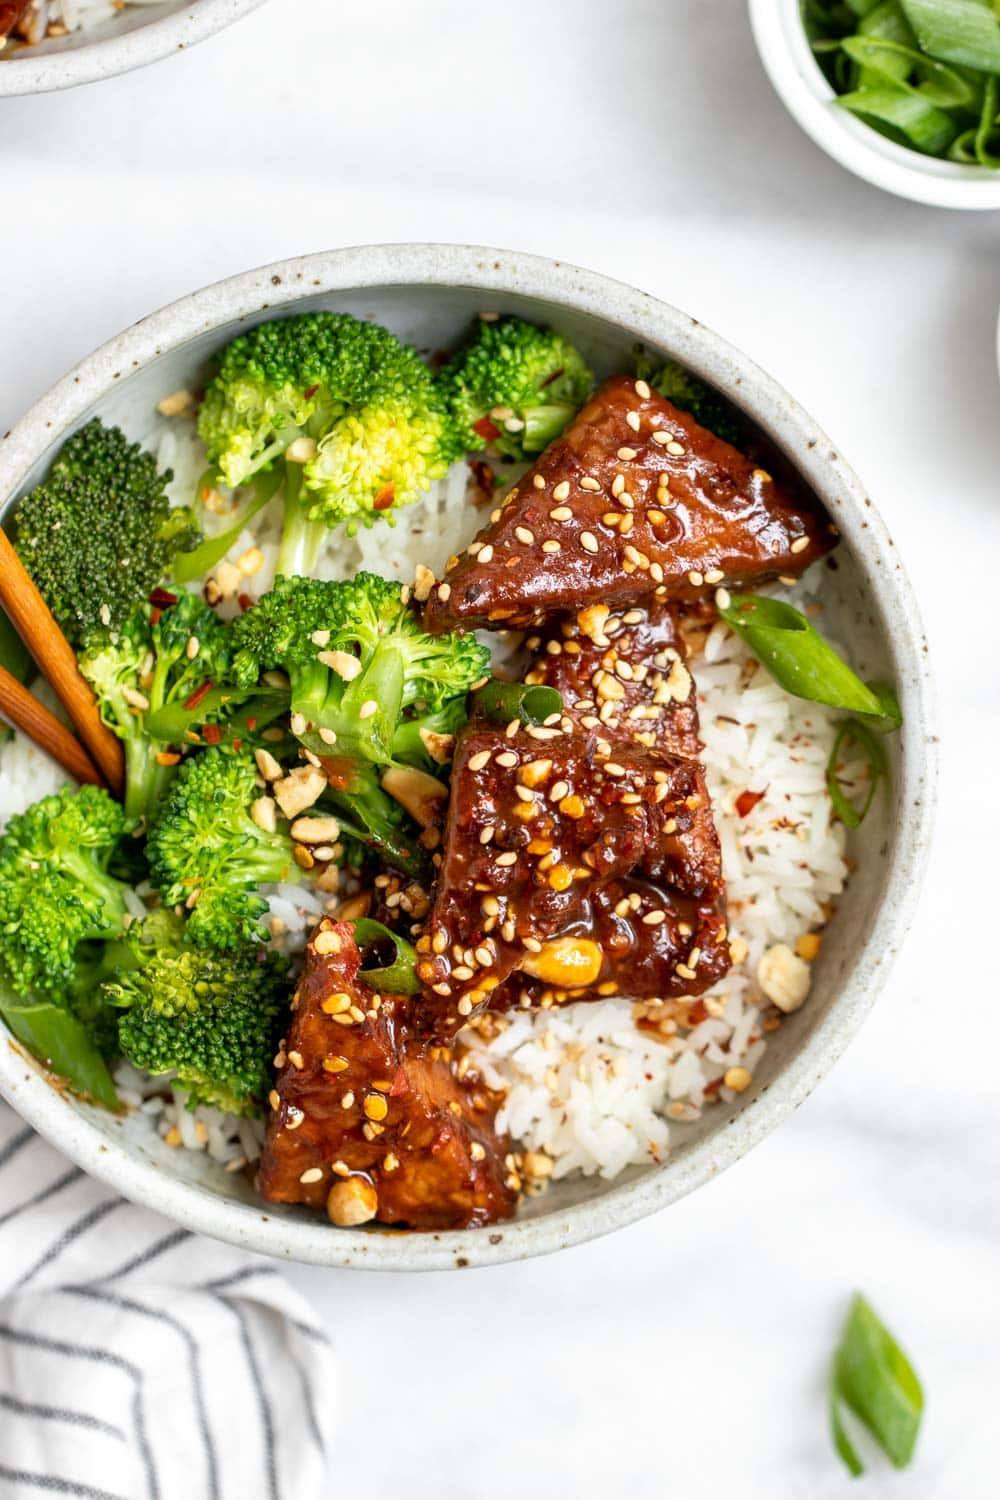 Vegan tempeh recipe with broccoli and rice in a small bowl.